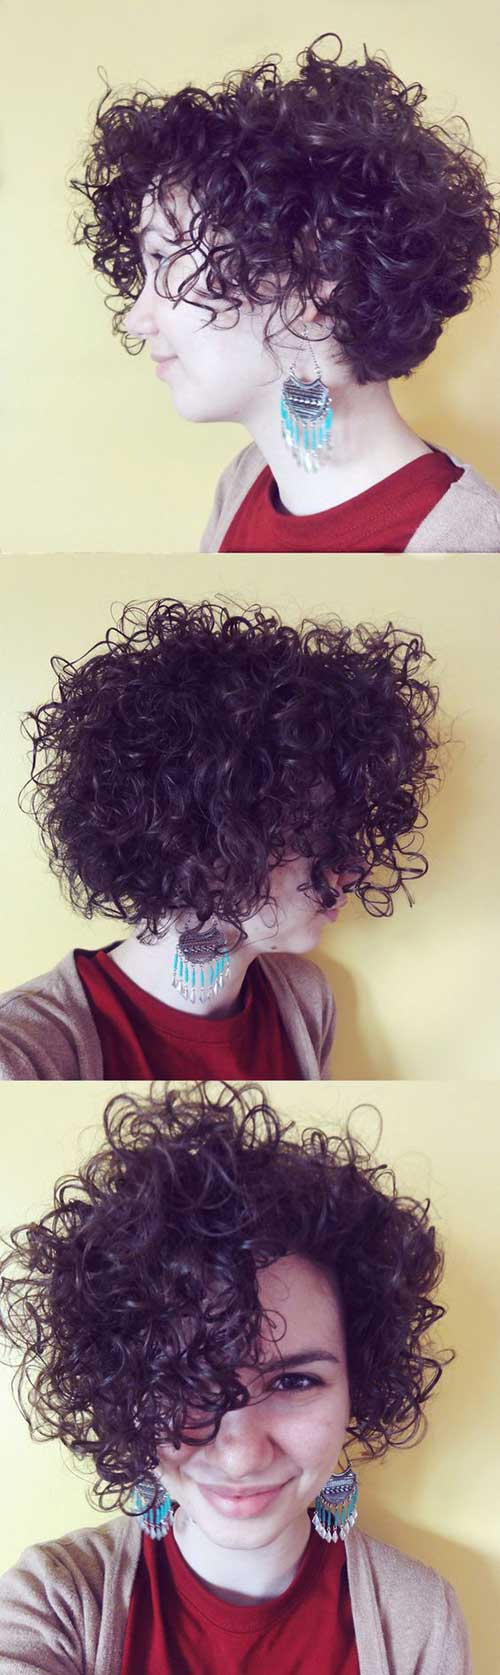 Curly Bob Frisuren-7